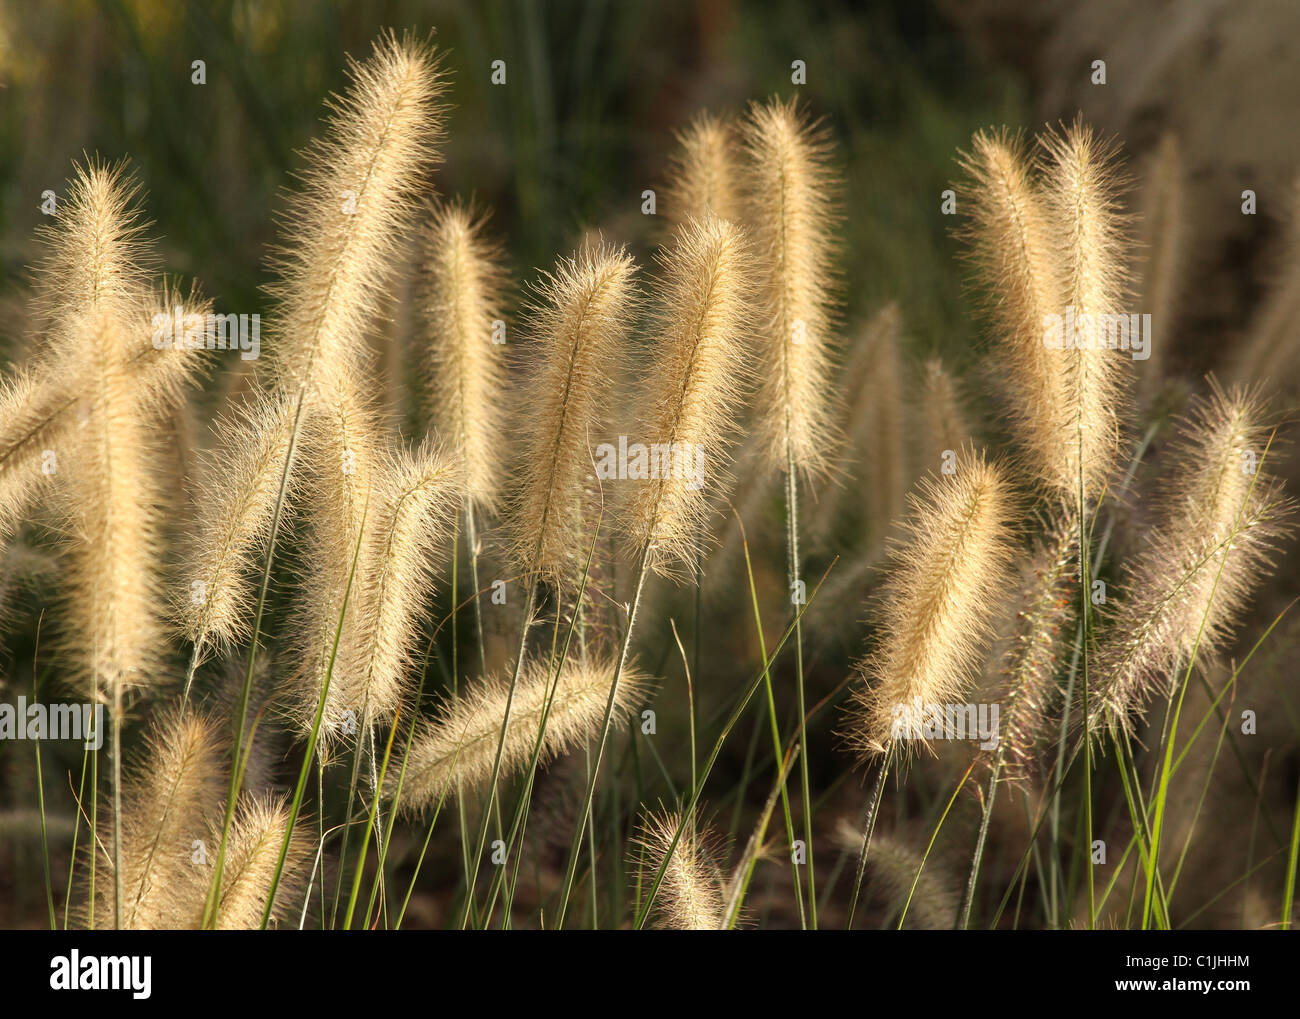 grass kinds group of light the against. Stock Foto